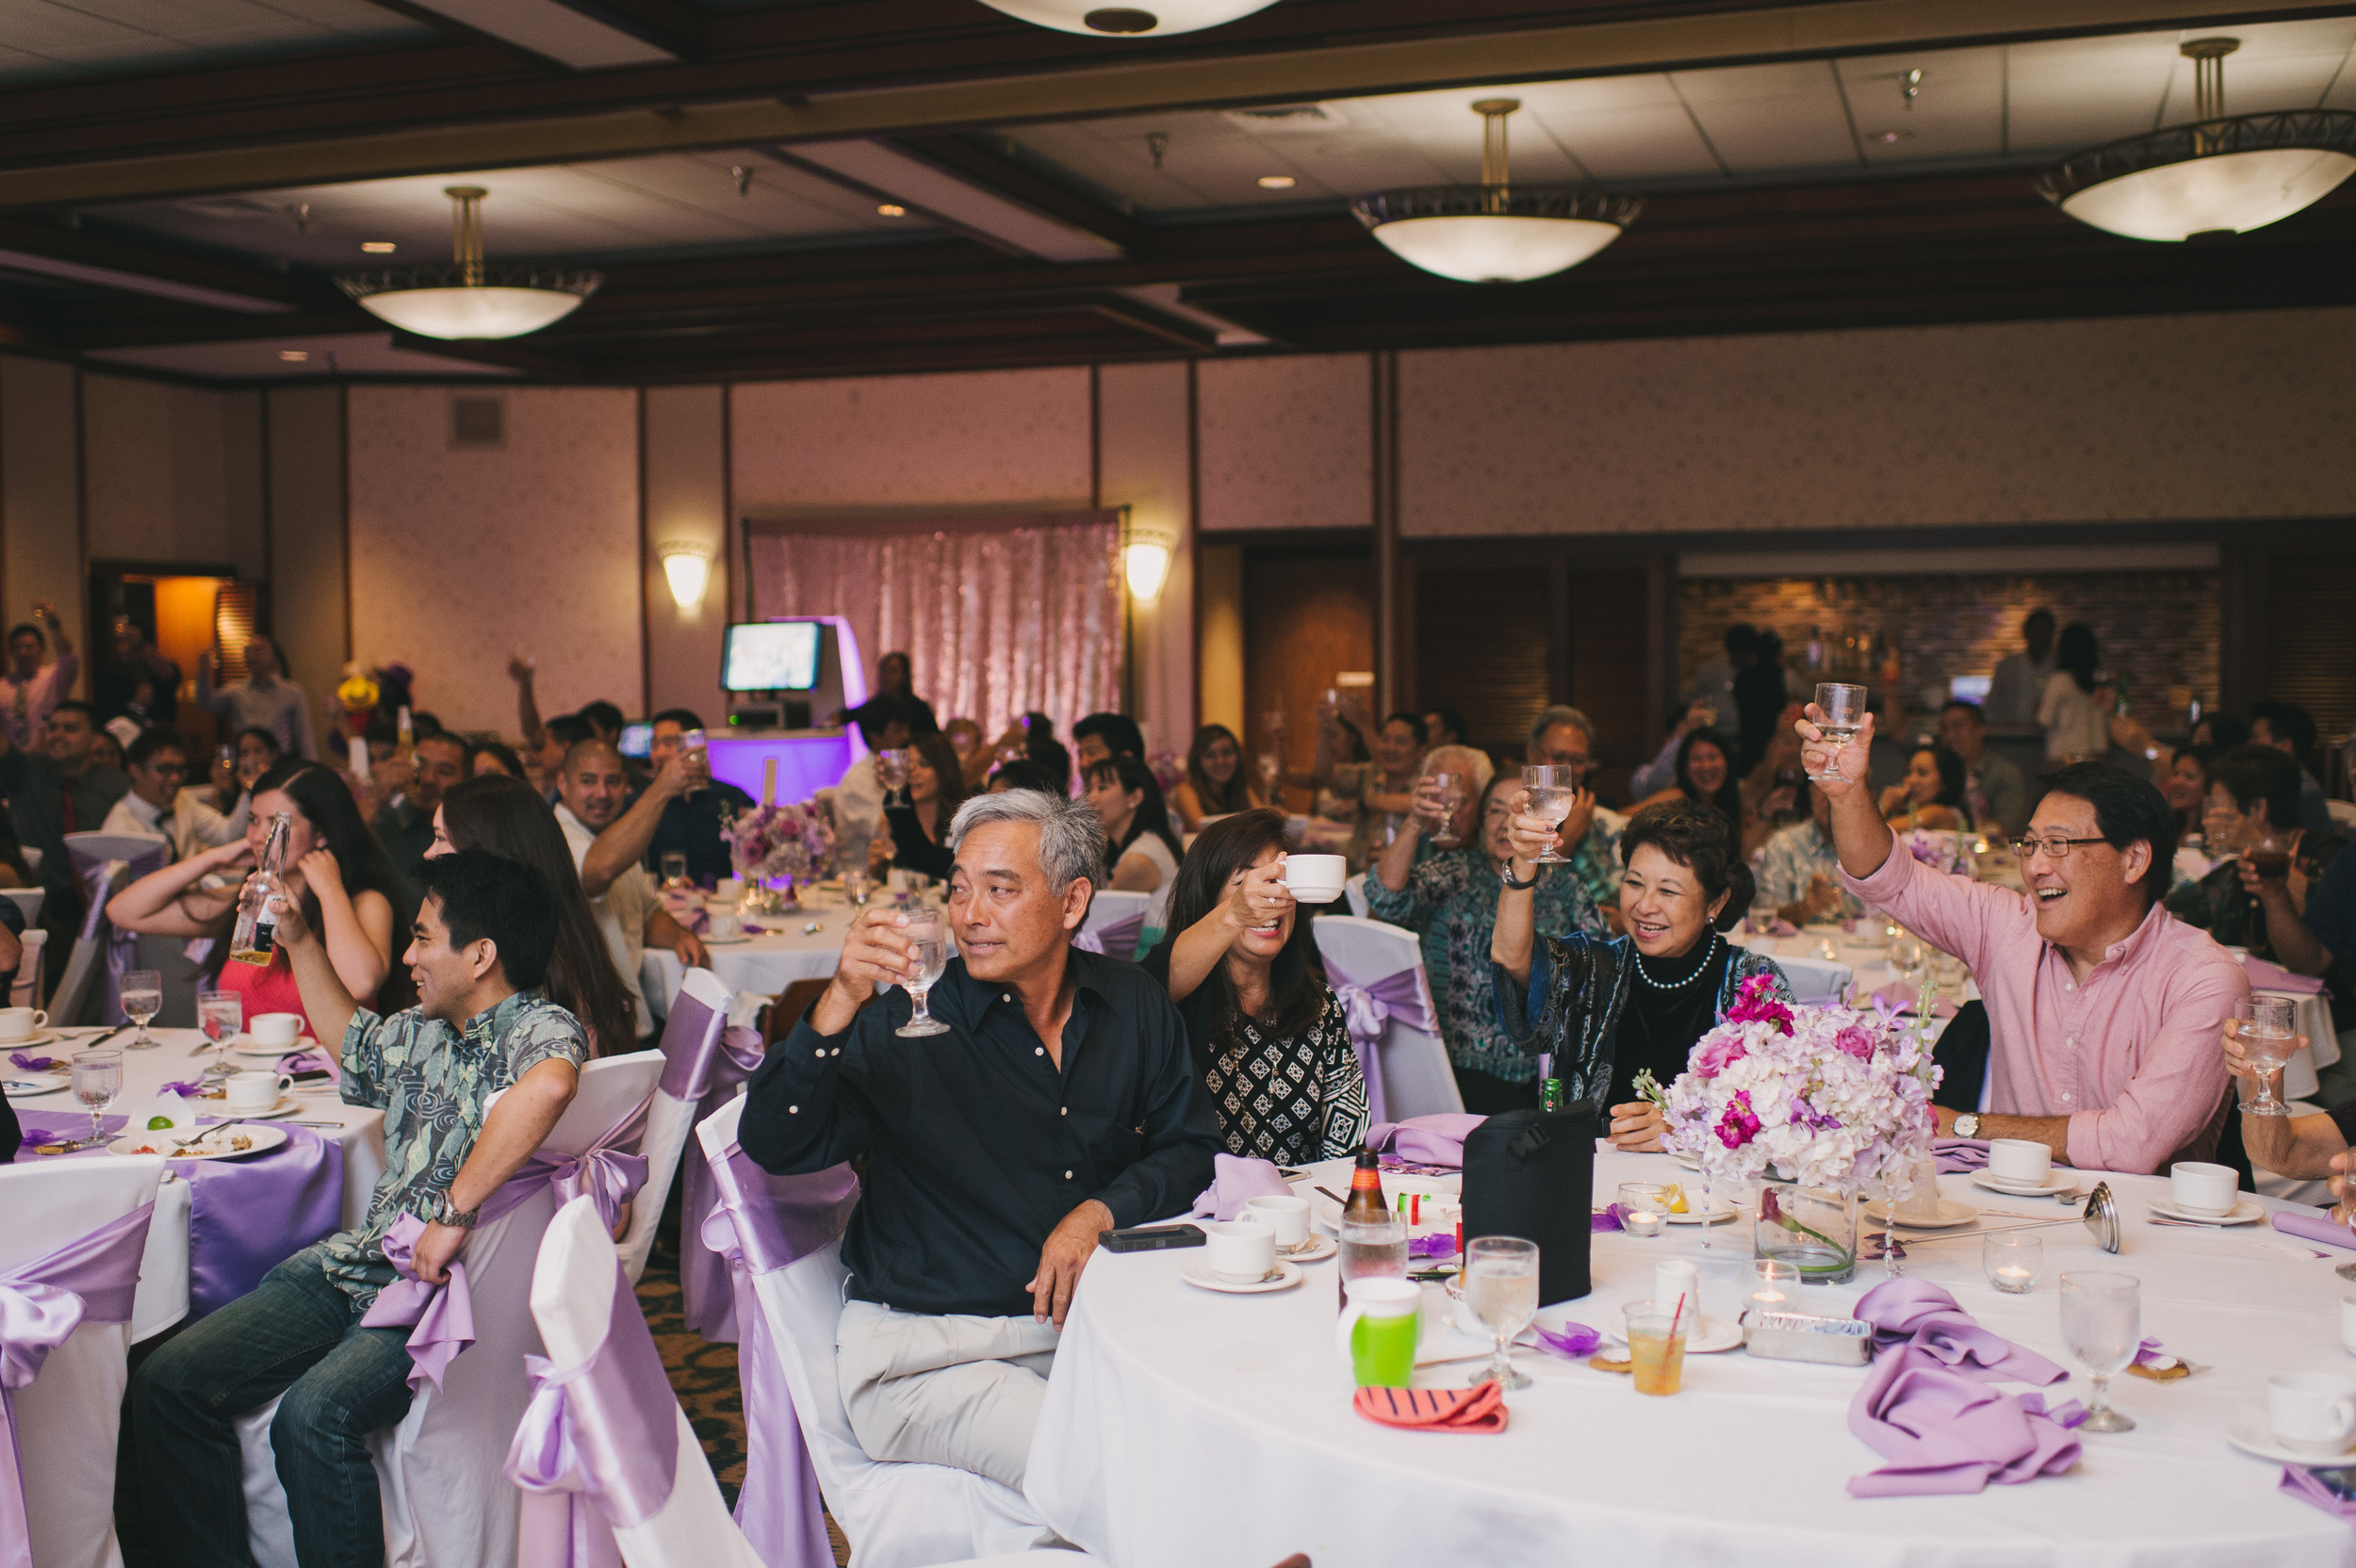 51-hale-koa-hotel-wedding-reception.jpg